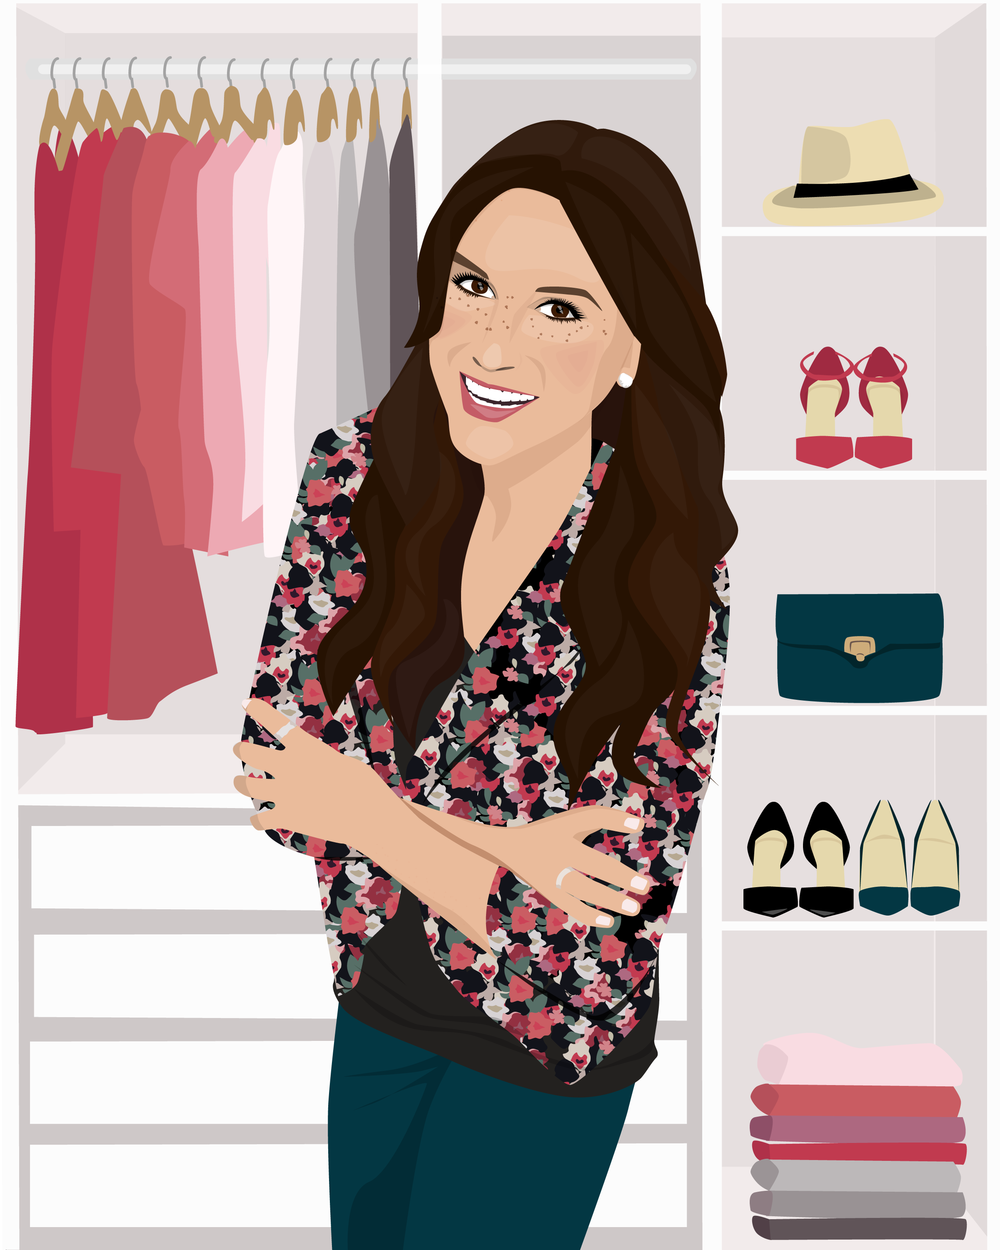 Katie-Schuppler-Illustration-v6-16x20_Artboard 1-01.png